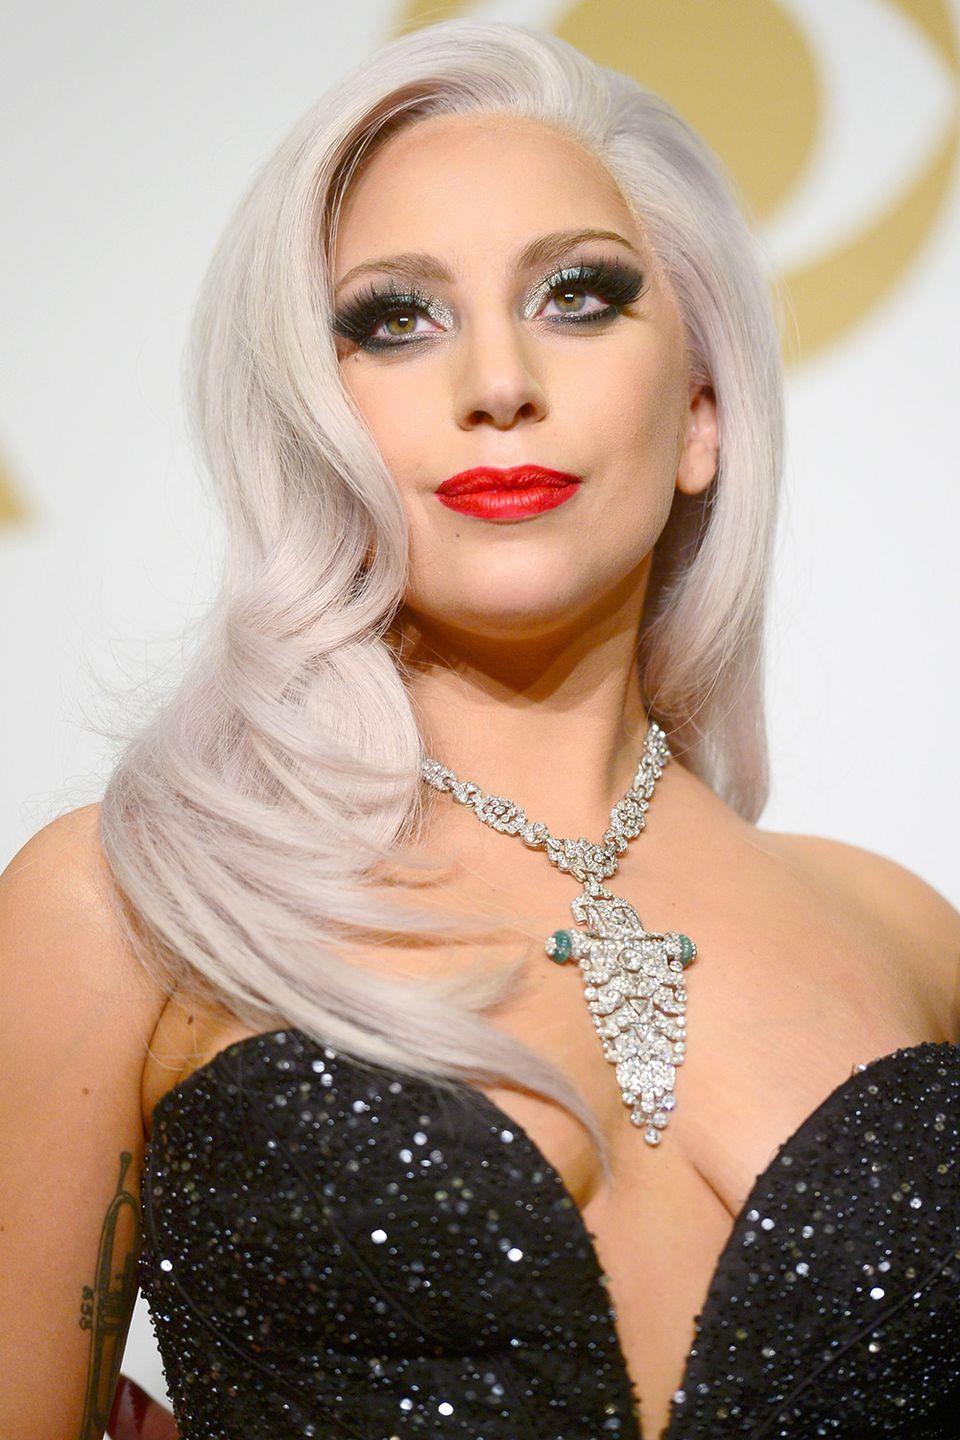 """<p><strong>Born</strong>: Stefani Joanne Angelina Germanotta</p><p>Before she became an international pop star, Germanotta adopted her now-famous stage name, <a href=""""https://www.thefreelibrary.com/THE+FEAR+FACTOR%3B+Lady+Gaga+used+tough+times+as+inspiration+for+her...-a0213005824"""" rel=""""nofollow noopener"""" target=""""_blank"""" data-ylk=""""slk:inspired by"""" class=""""link rapid-noclick-resp"""">inspired by</a> the 1984 Queen song """"Radio Ga Ga."""" Gaga <a href=""""https://twitter.com/ladygaga/status/940727983588773889"""" rel=""""nofollow noopener"""" target=""""_blank"""" data-ylk=""""slk:will also retain her stage name"""" class=""""link rapid-noclick-resp"""">will also retain her stage name</a> for all her acting projects. </p>"""